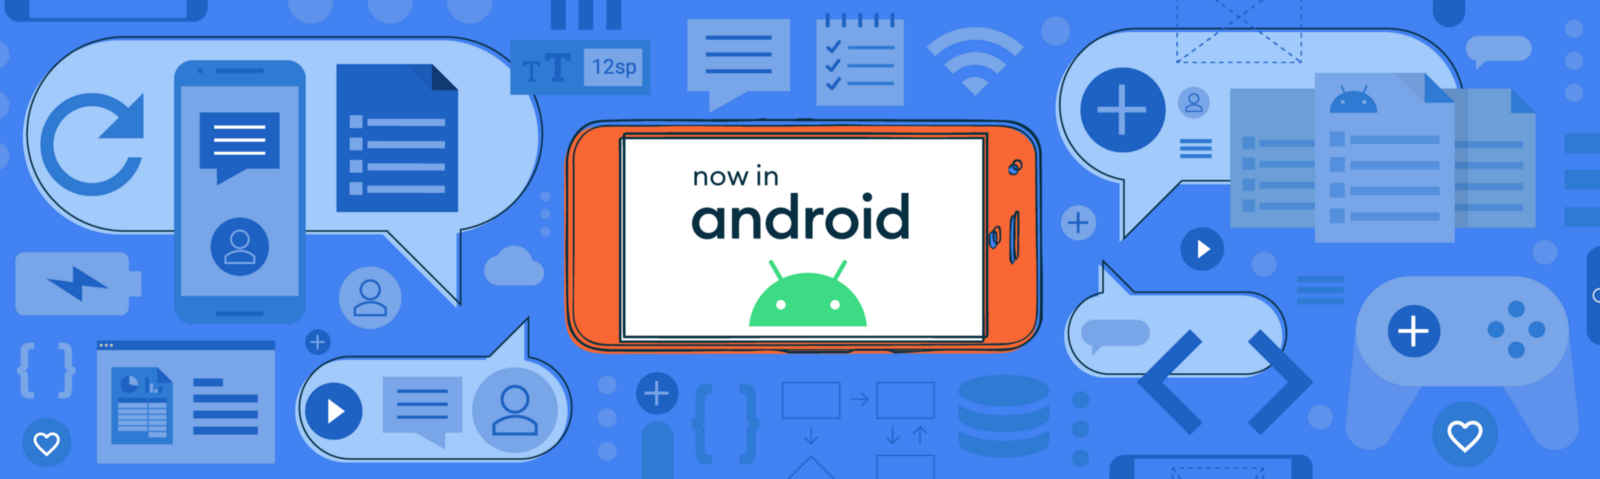 """Blue background with tech images like wifi symbols, chat bubbles, etc. Orange cell phone in the middle has the Android logo and title """"Now in Andorid"""""""